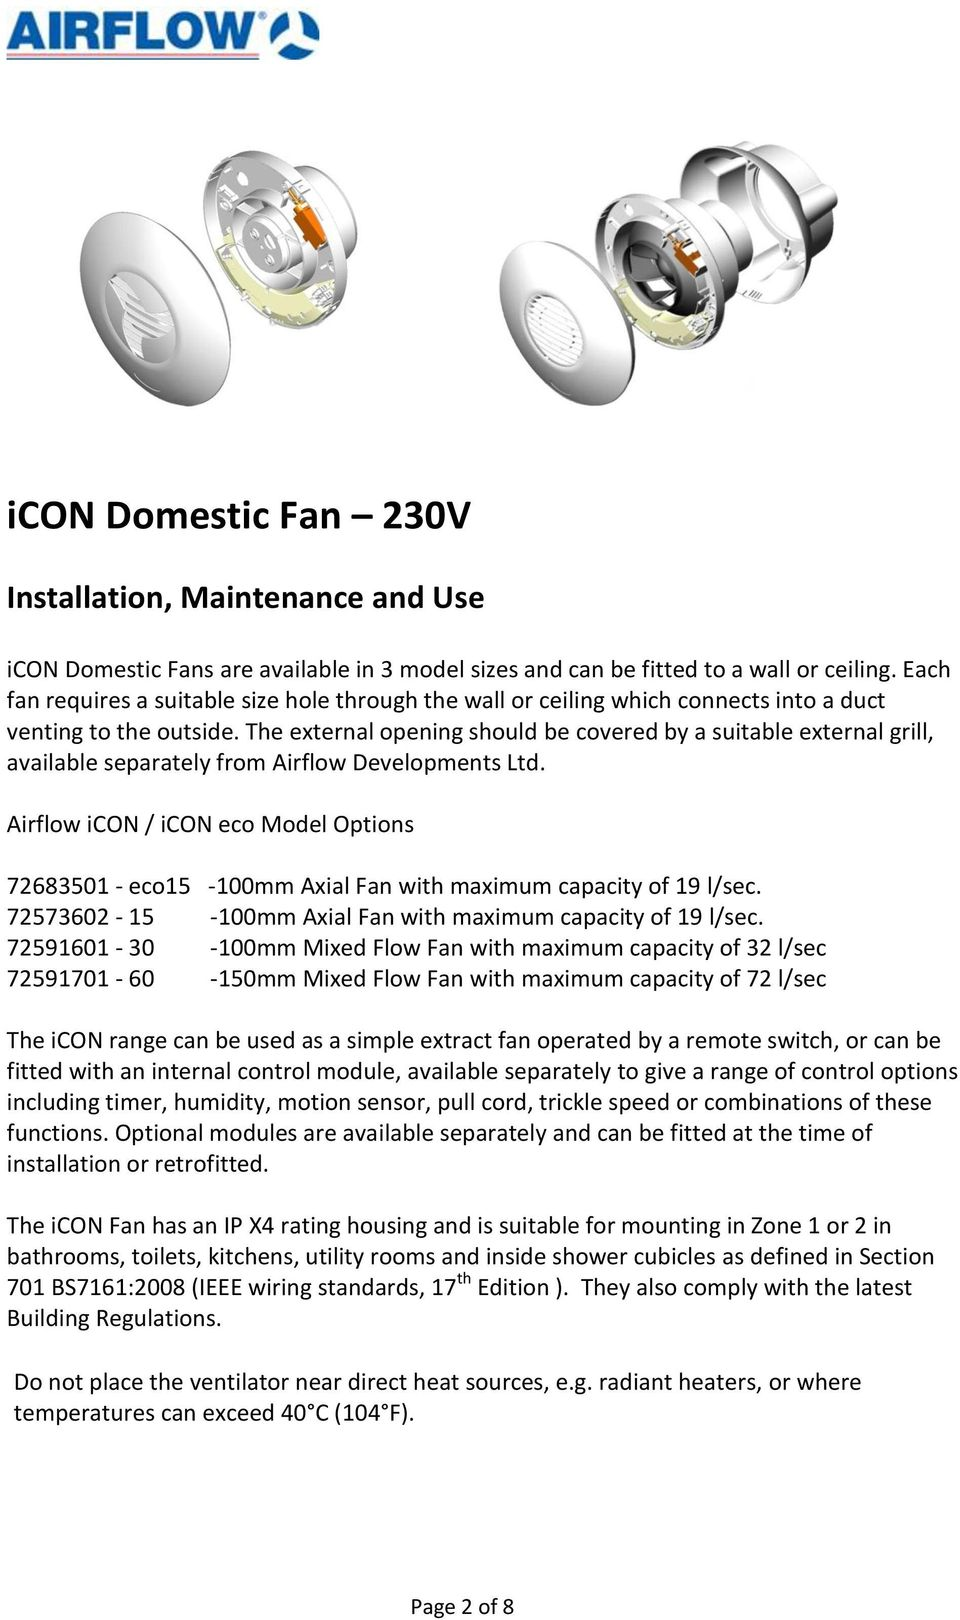 Domestic Ac Fans 230v Installation And Operating Guide Eco 230v Ac Base Models Icon Eco Icon Icon Icon Pdf Free Download